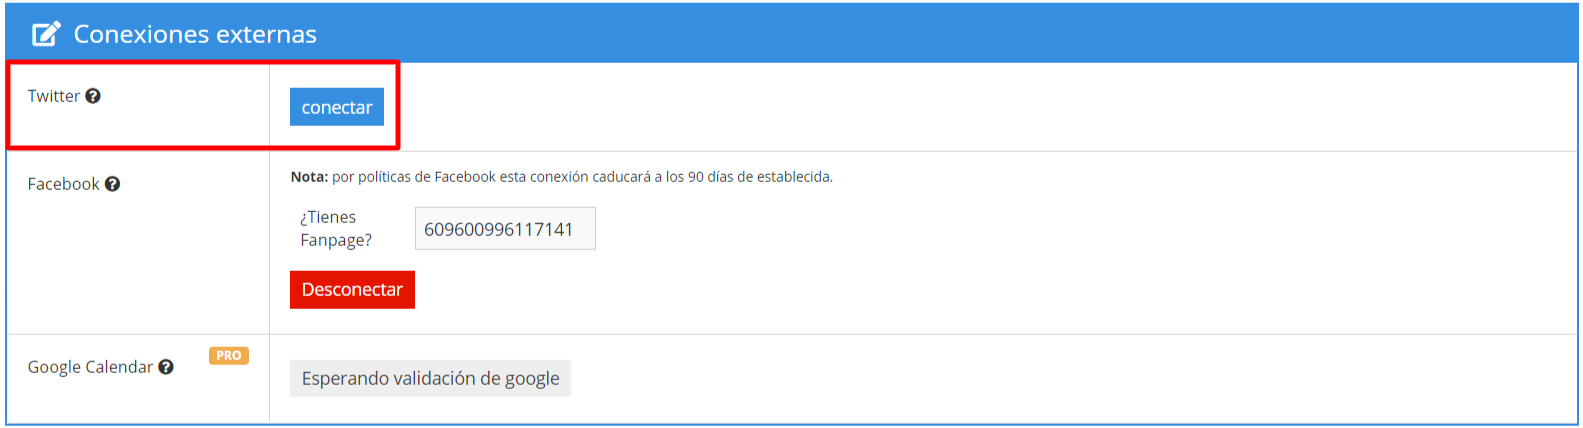 Conectar twitter con Wasi